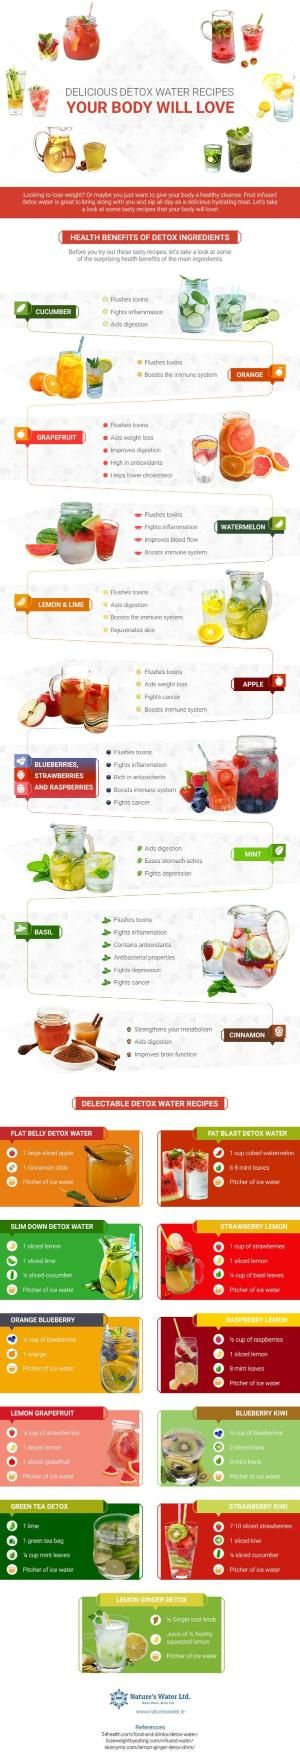 4shares 4Facebook 0Twitter 0PinterestBy Nature's Water Looking to detox and lose weight? Or maybe you just want to give your body a healthy cleanse? Fruit infused detox water is great to bring along with you and sip all day as a delicious hydrating treat. Let's take a look at some tasty recipes that your body … by Tookewl Sue